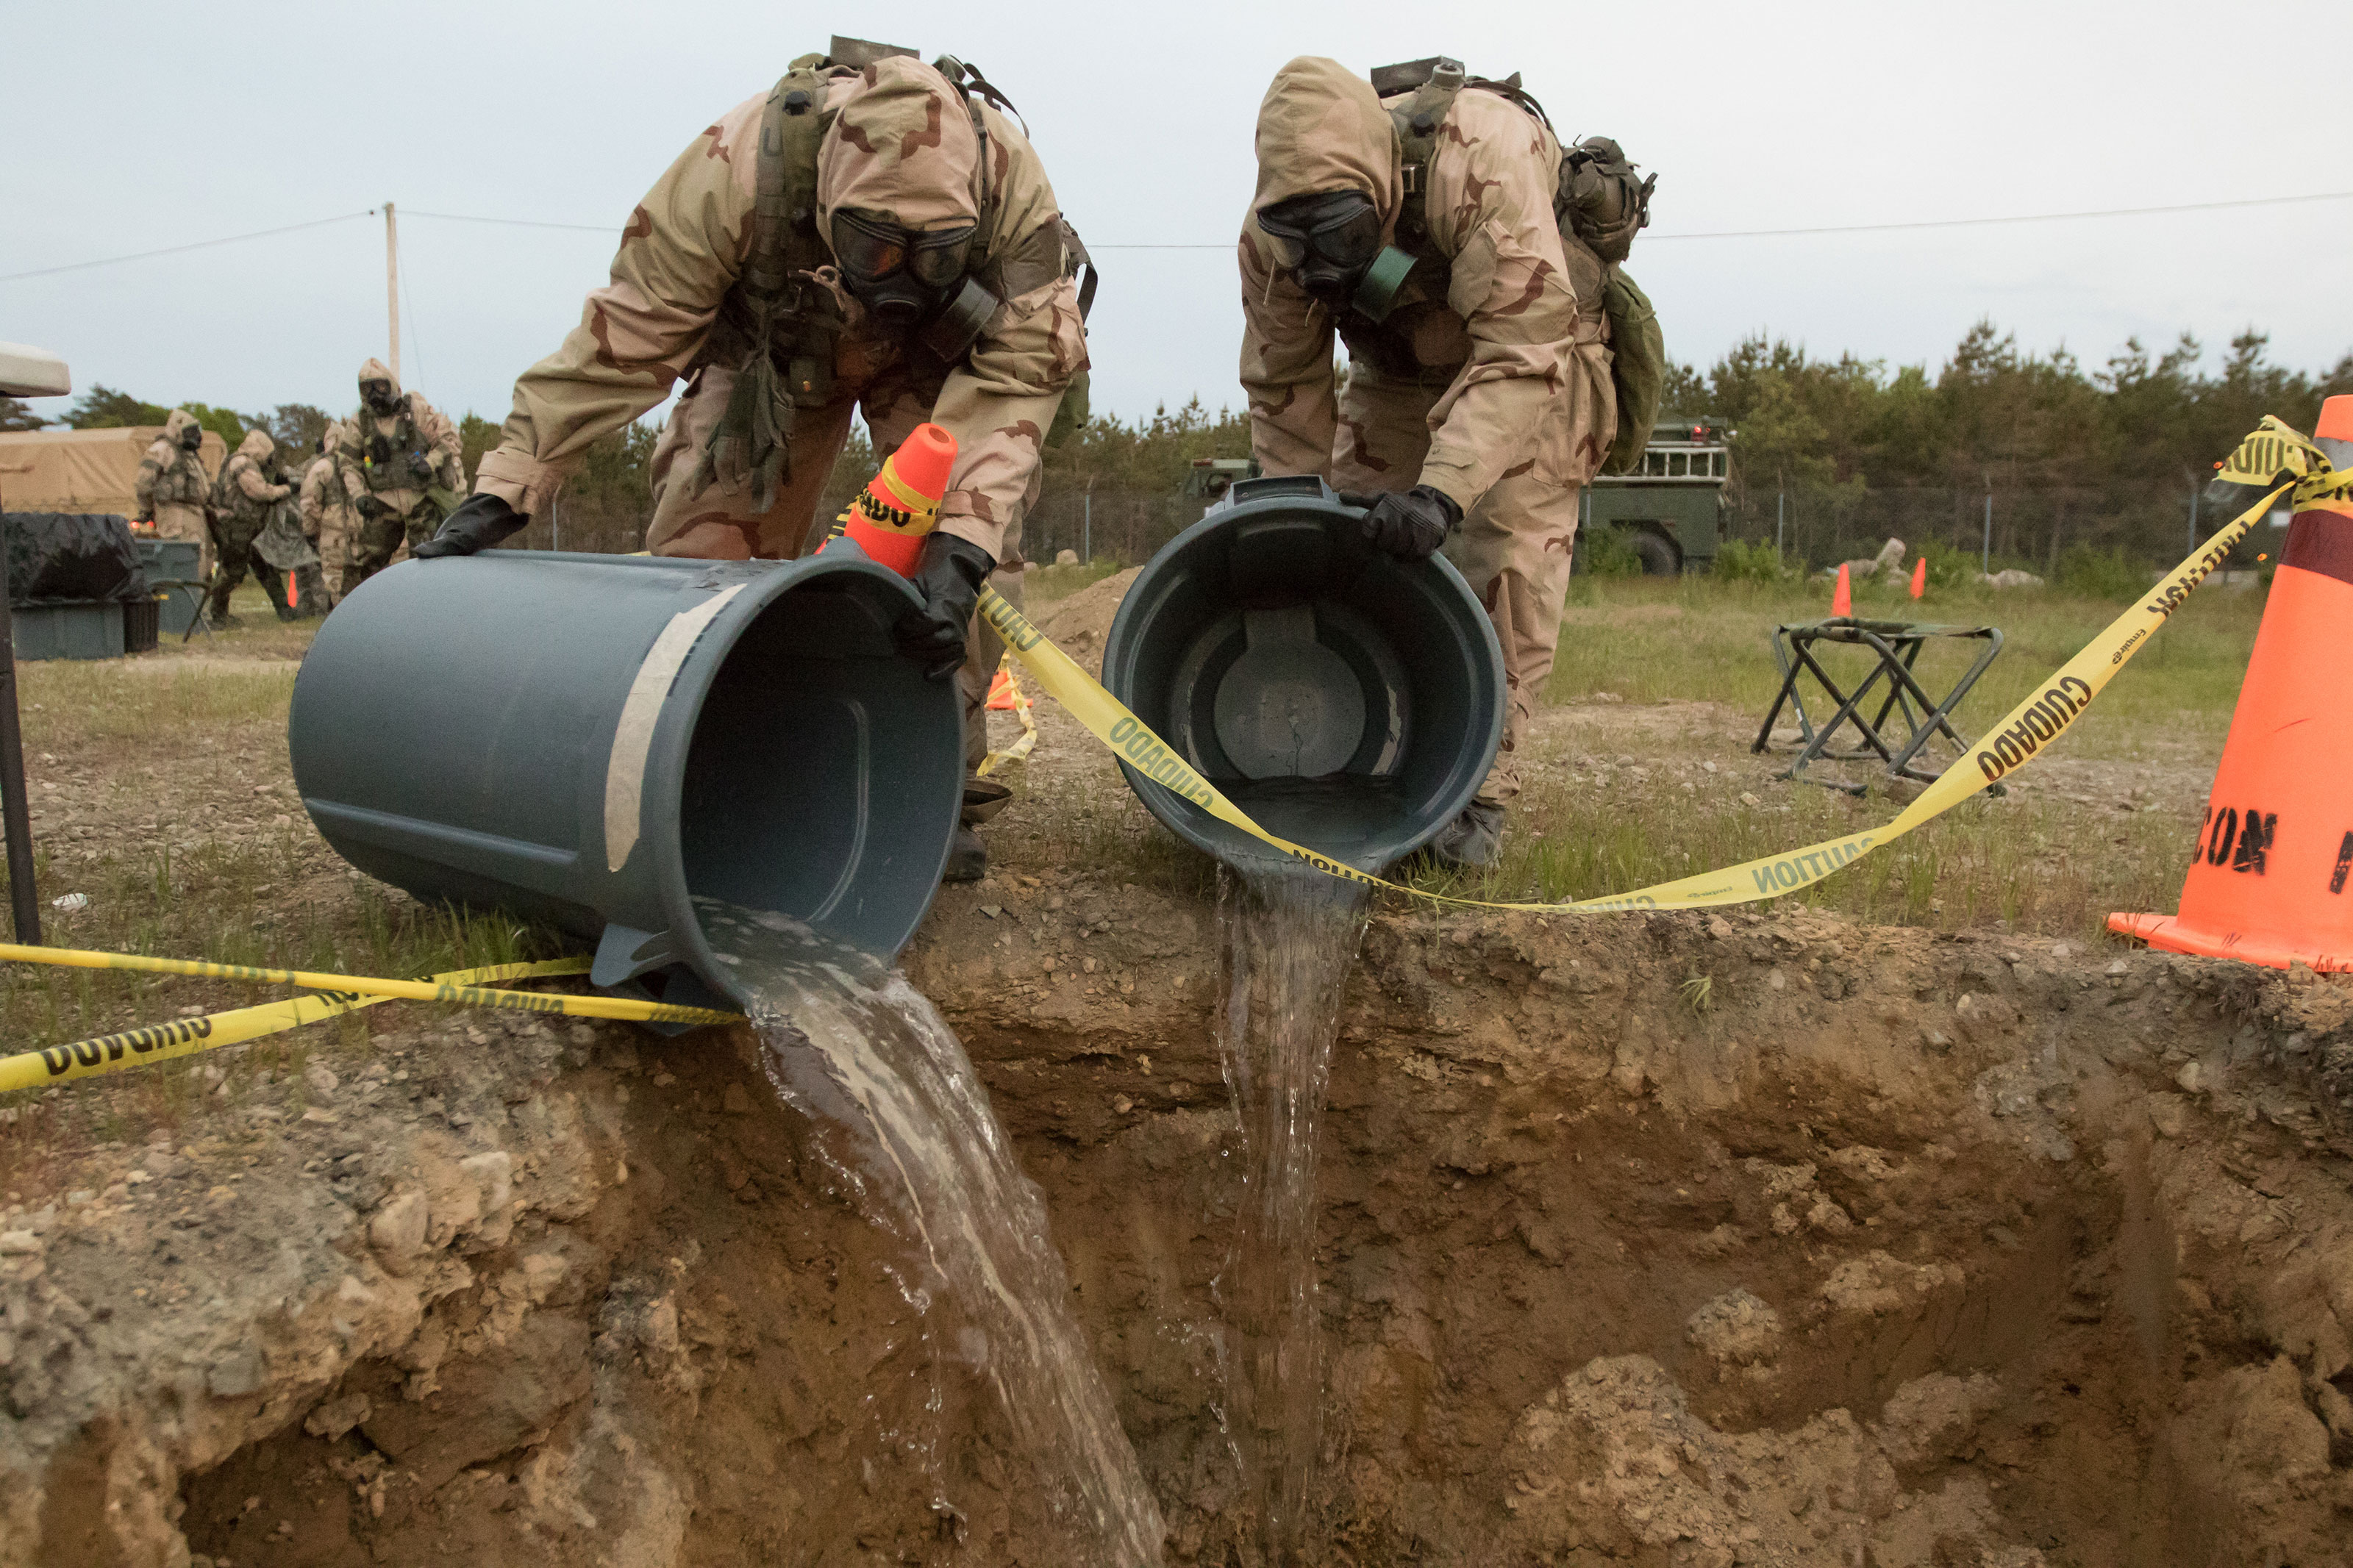 The US Won't Admit Just How Badly It Poisoned Military Base Water